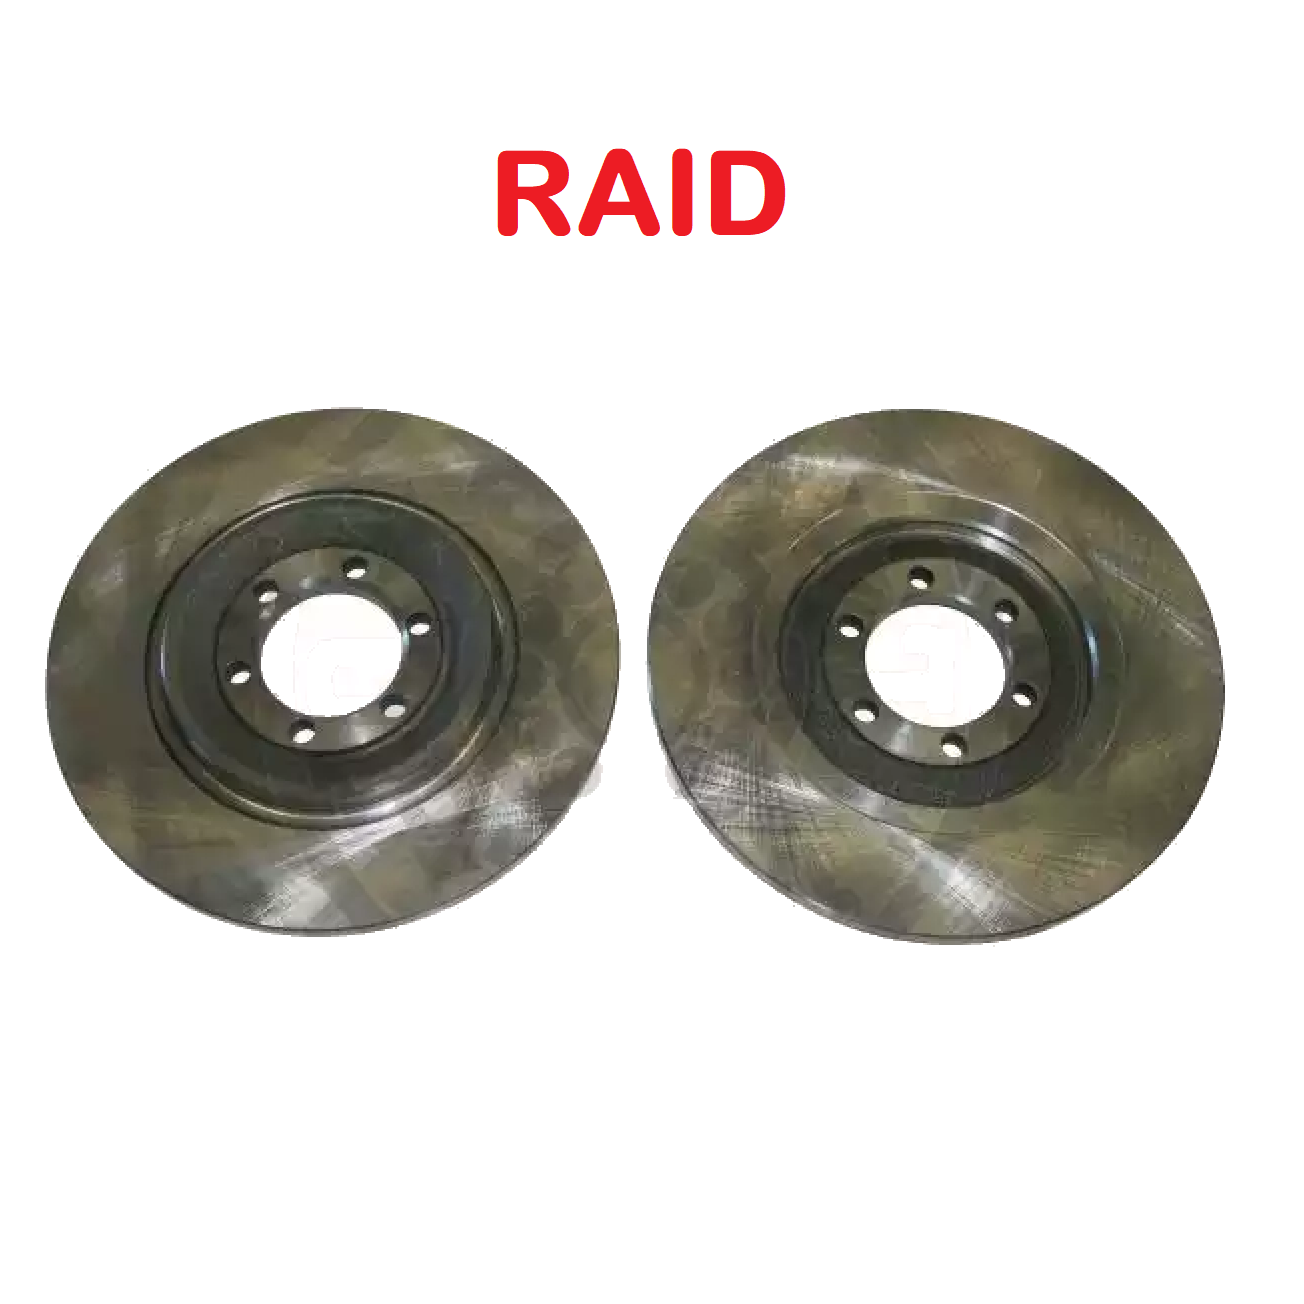 PAIR OF REAR BRAKE DISCS ALFA ROMEO 75 - 90 - GTV RAID FOR 60533971